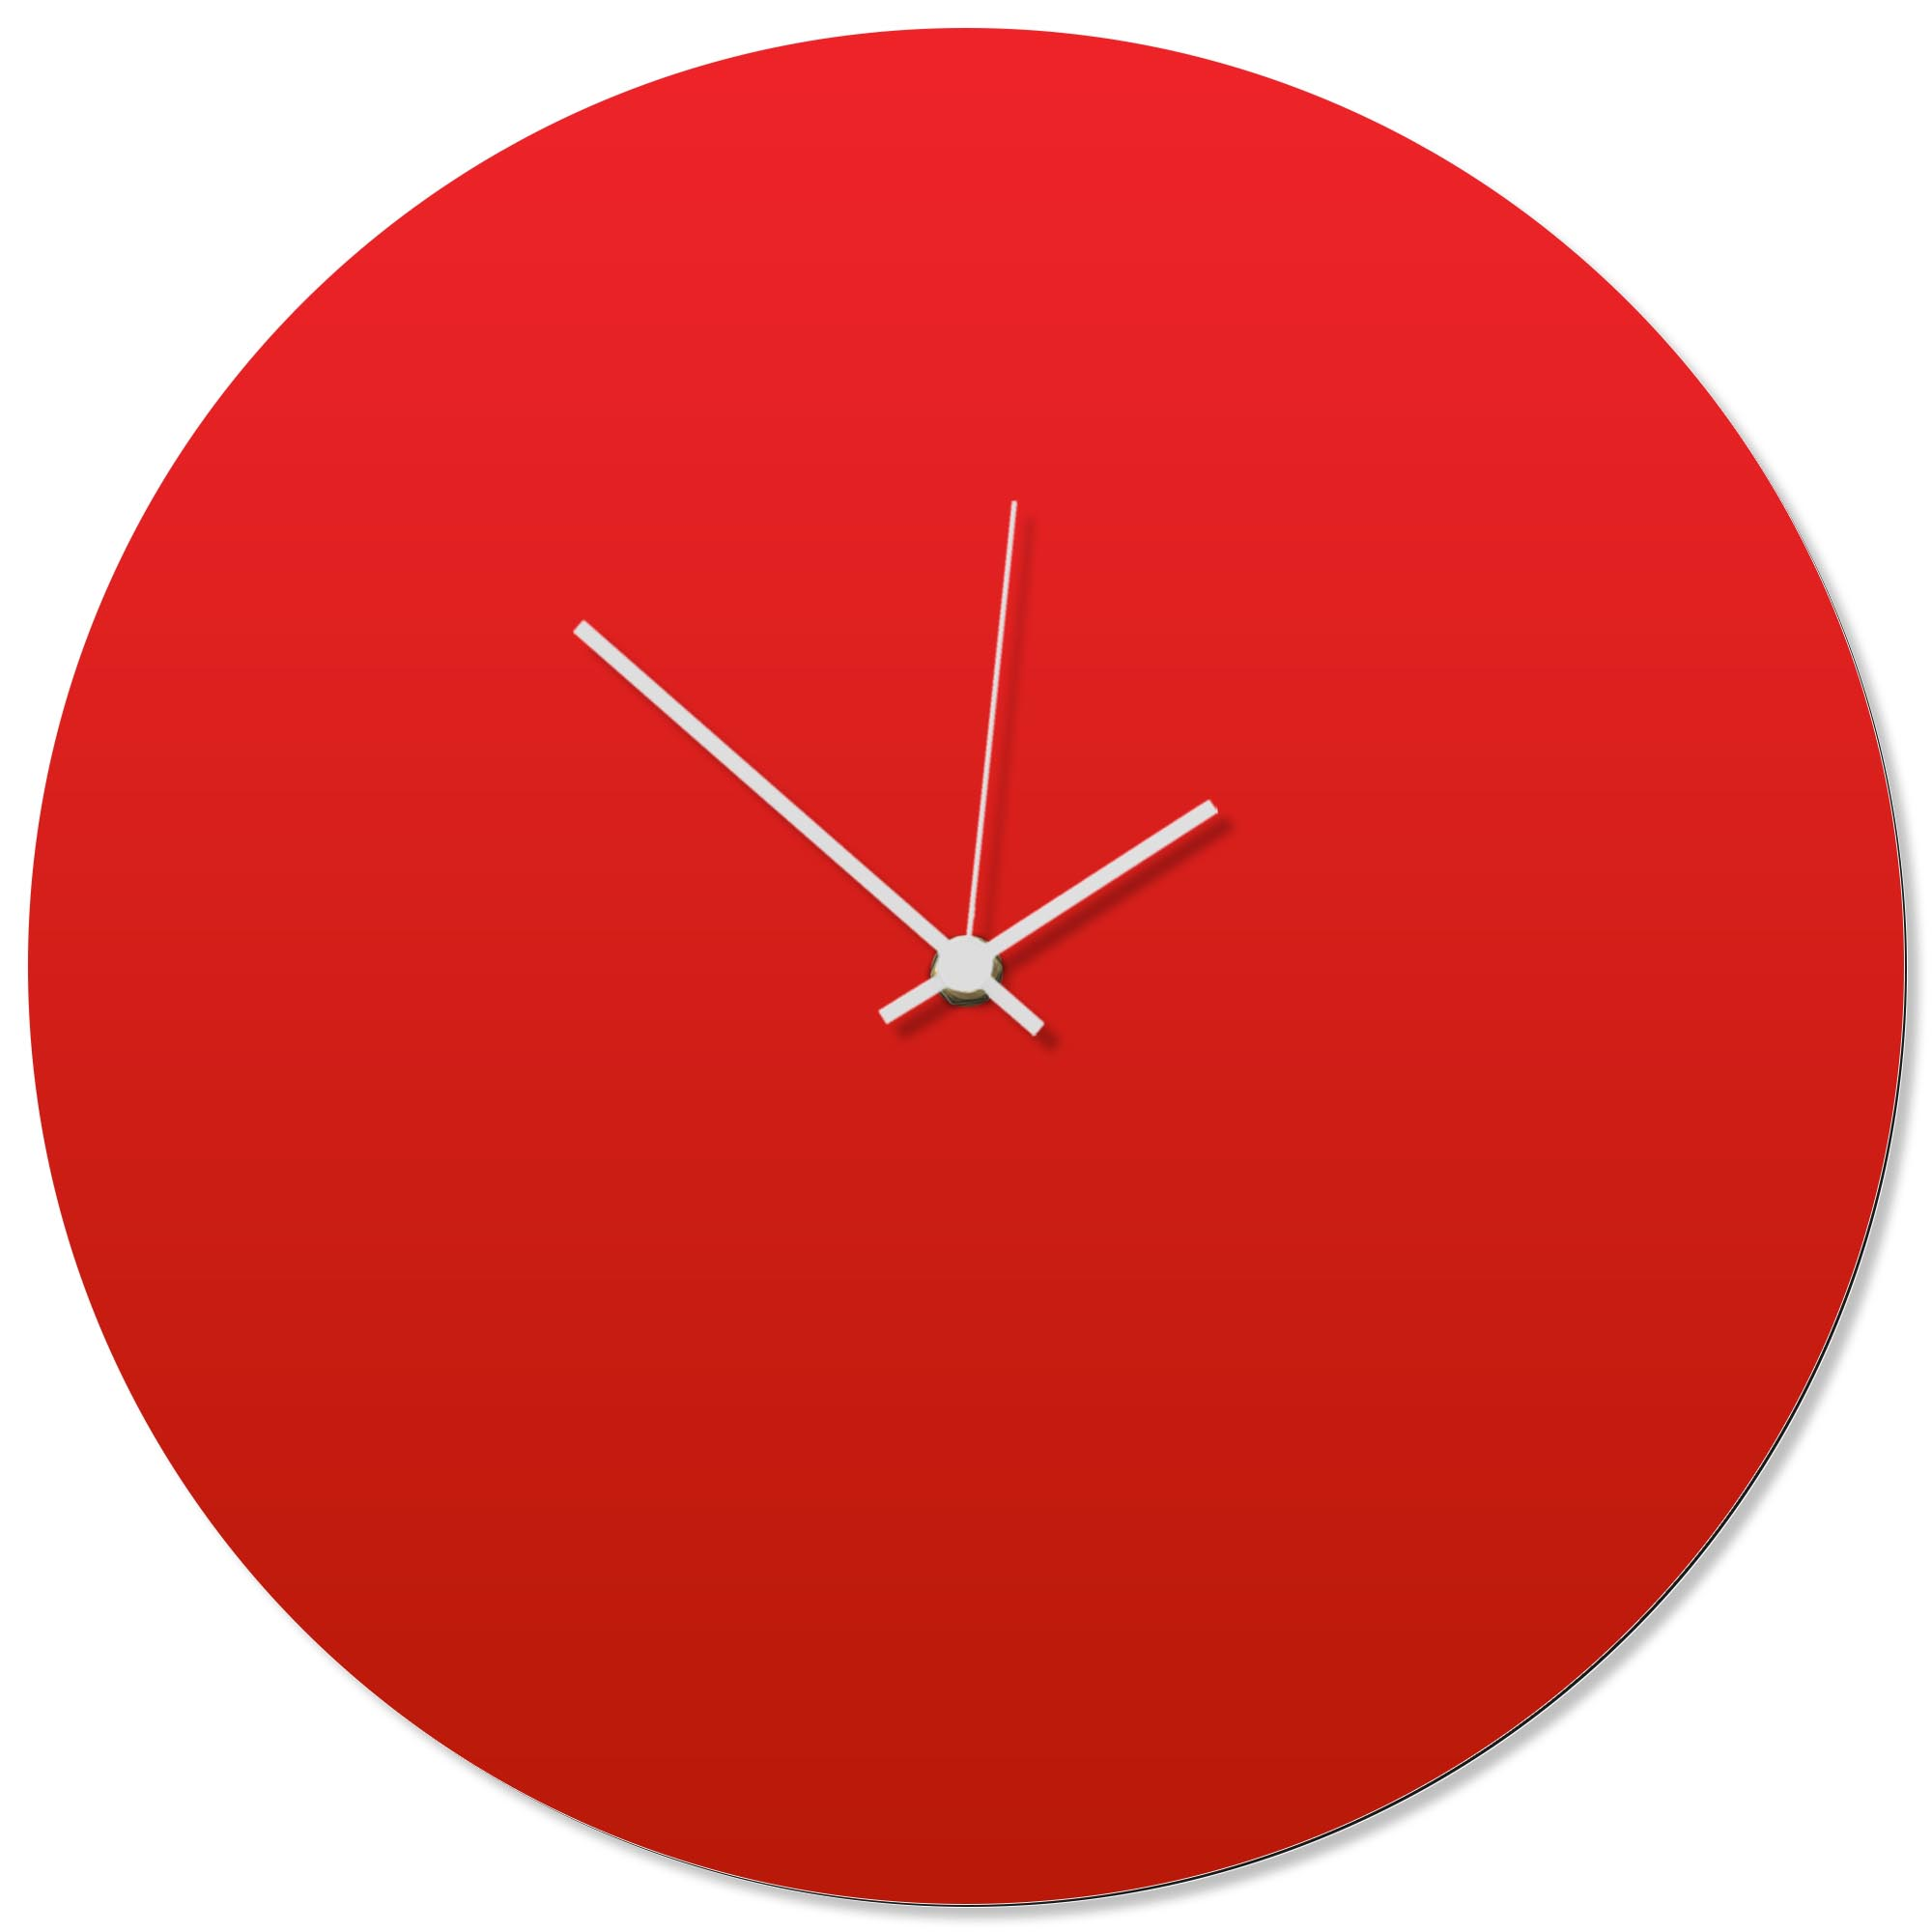 Redout White Circle Clock 16x16in. Aluminum Polymetal